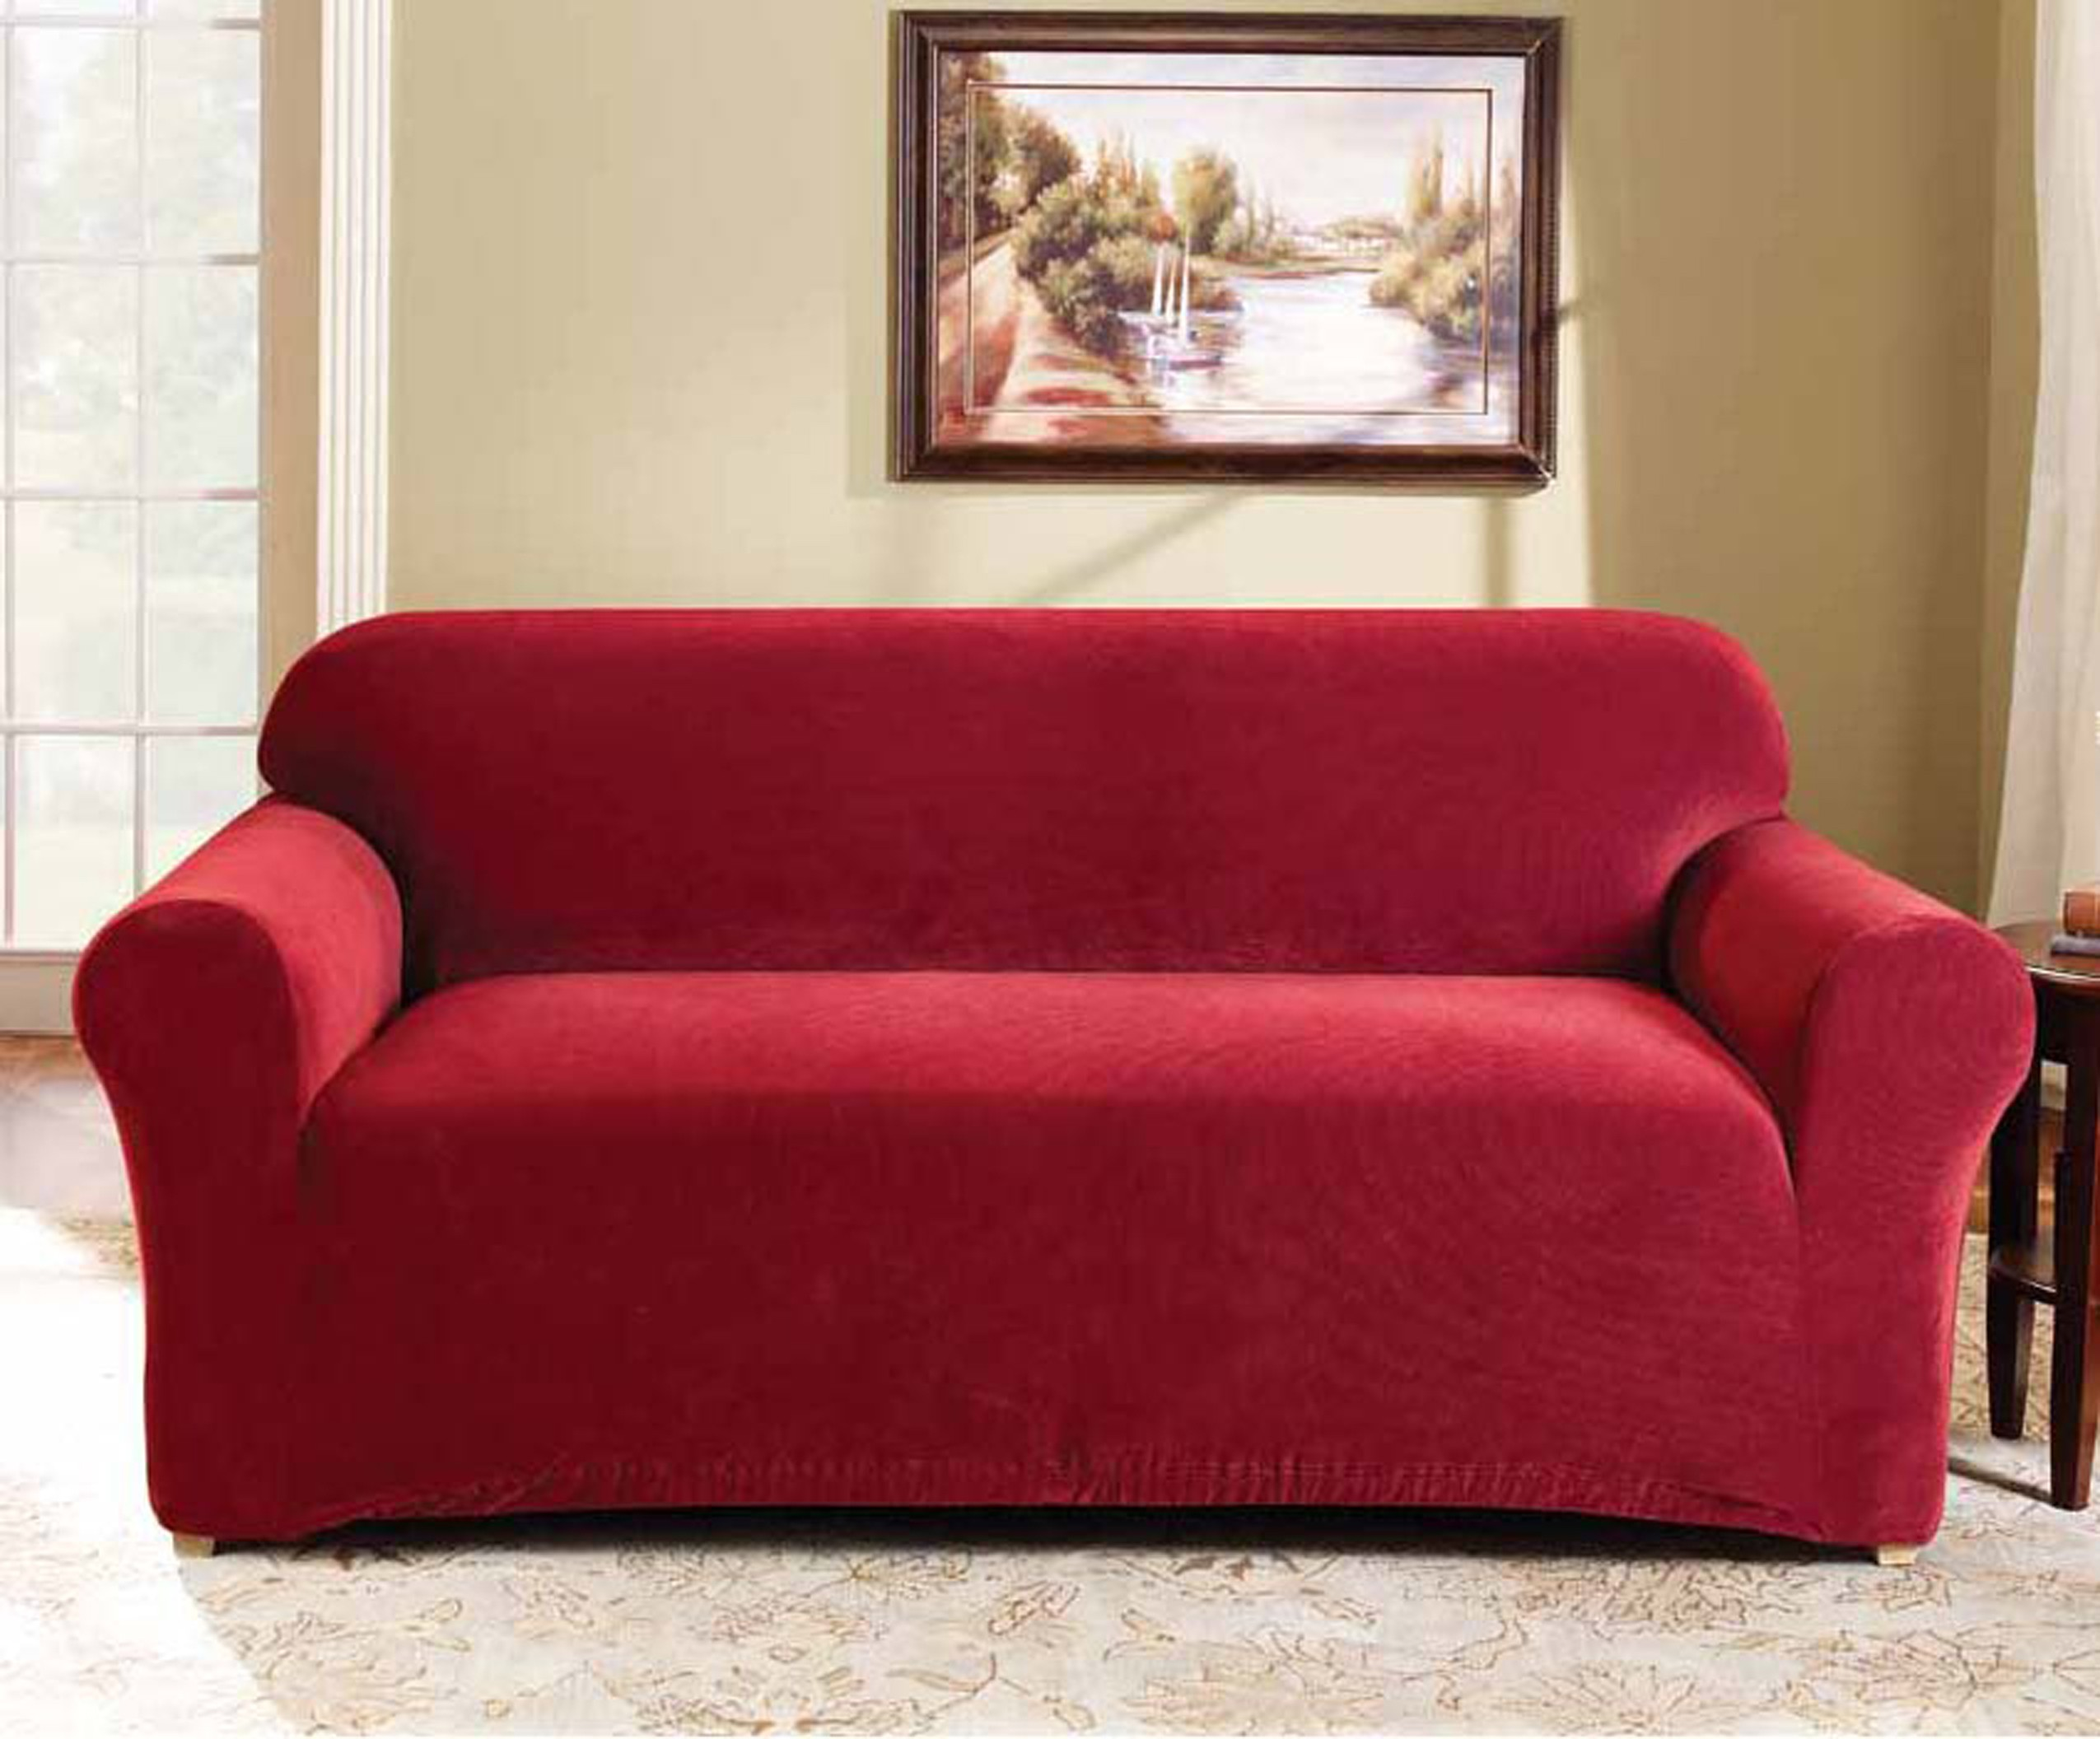 two seater sofa bed cover spray paint leather red 2 couch by surefit covers best